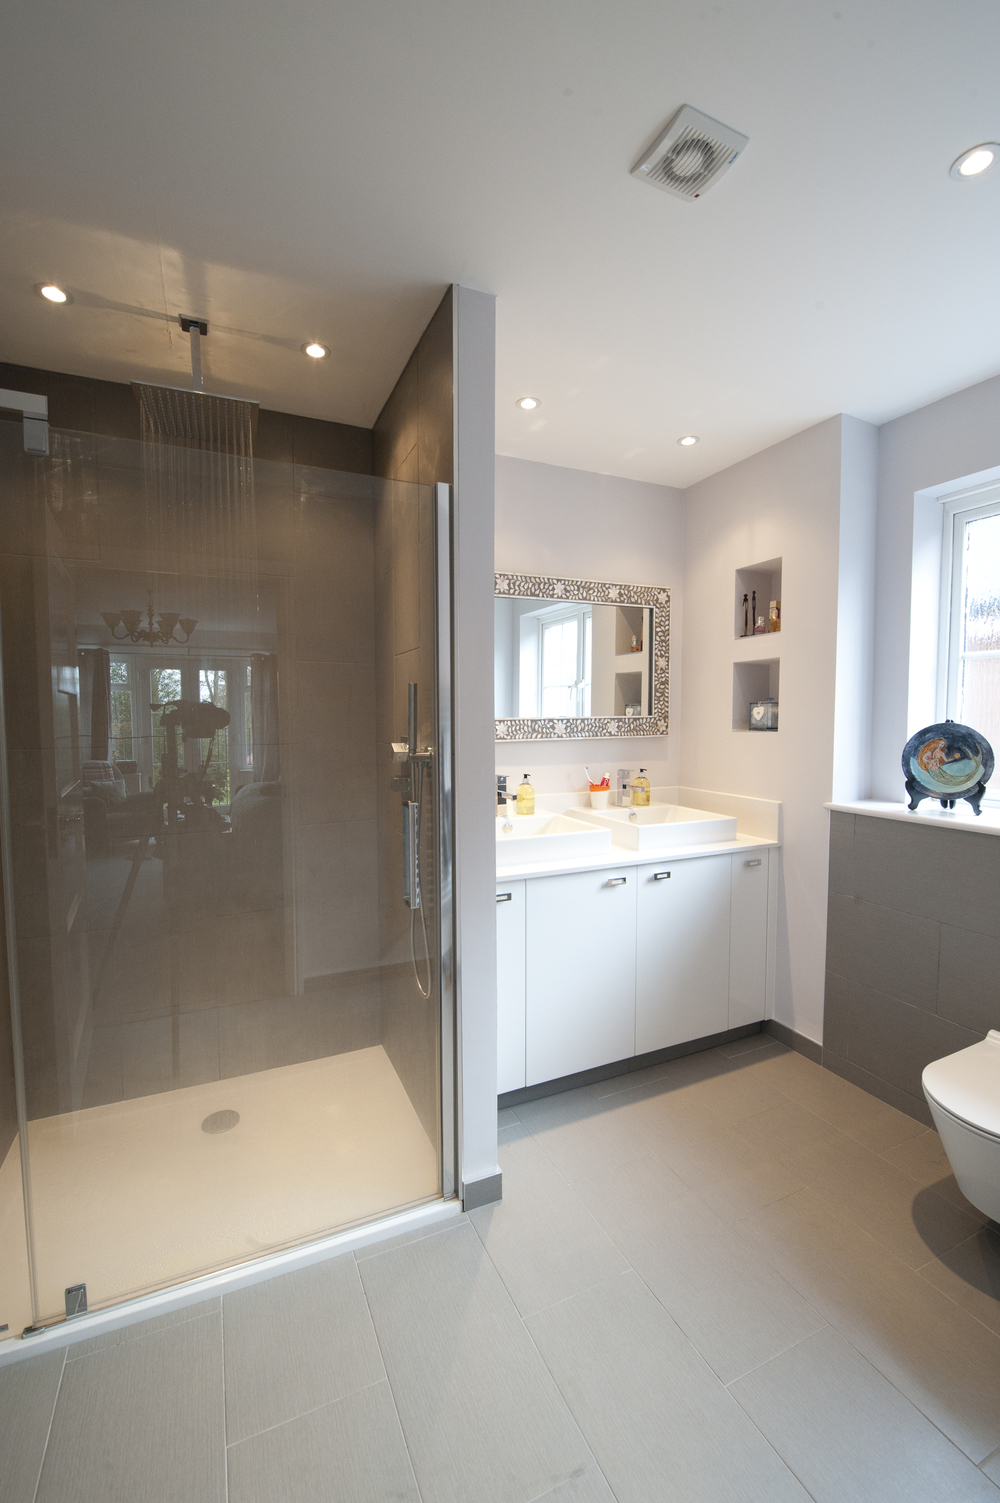 Tunbridge Wells Bathroom Design by Smartstyle Interiors 1.jpg